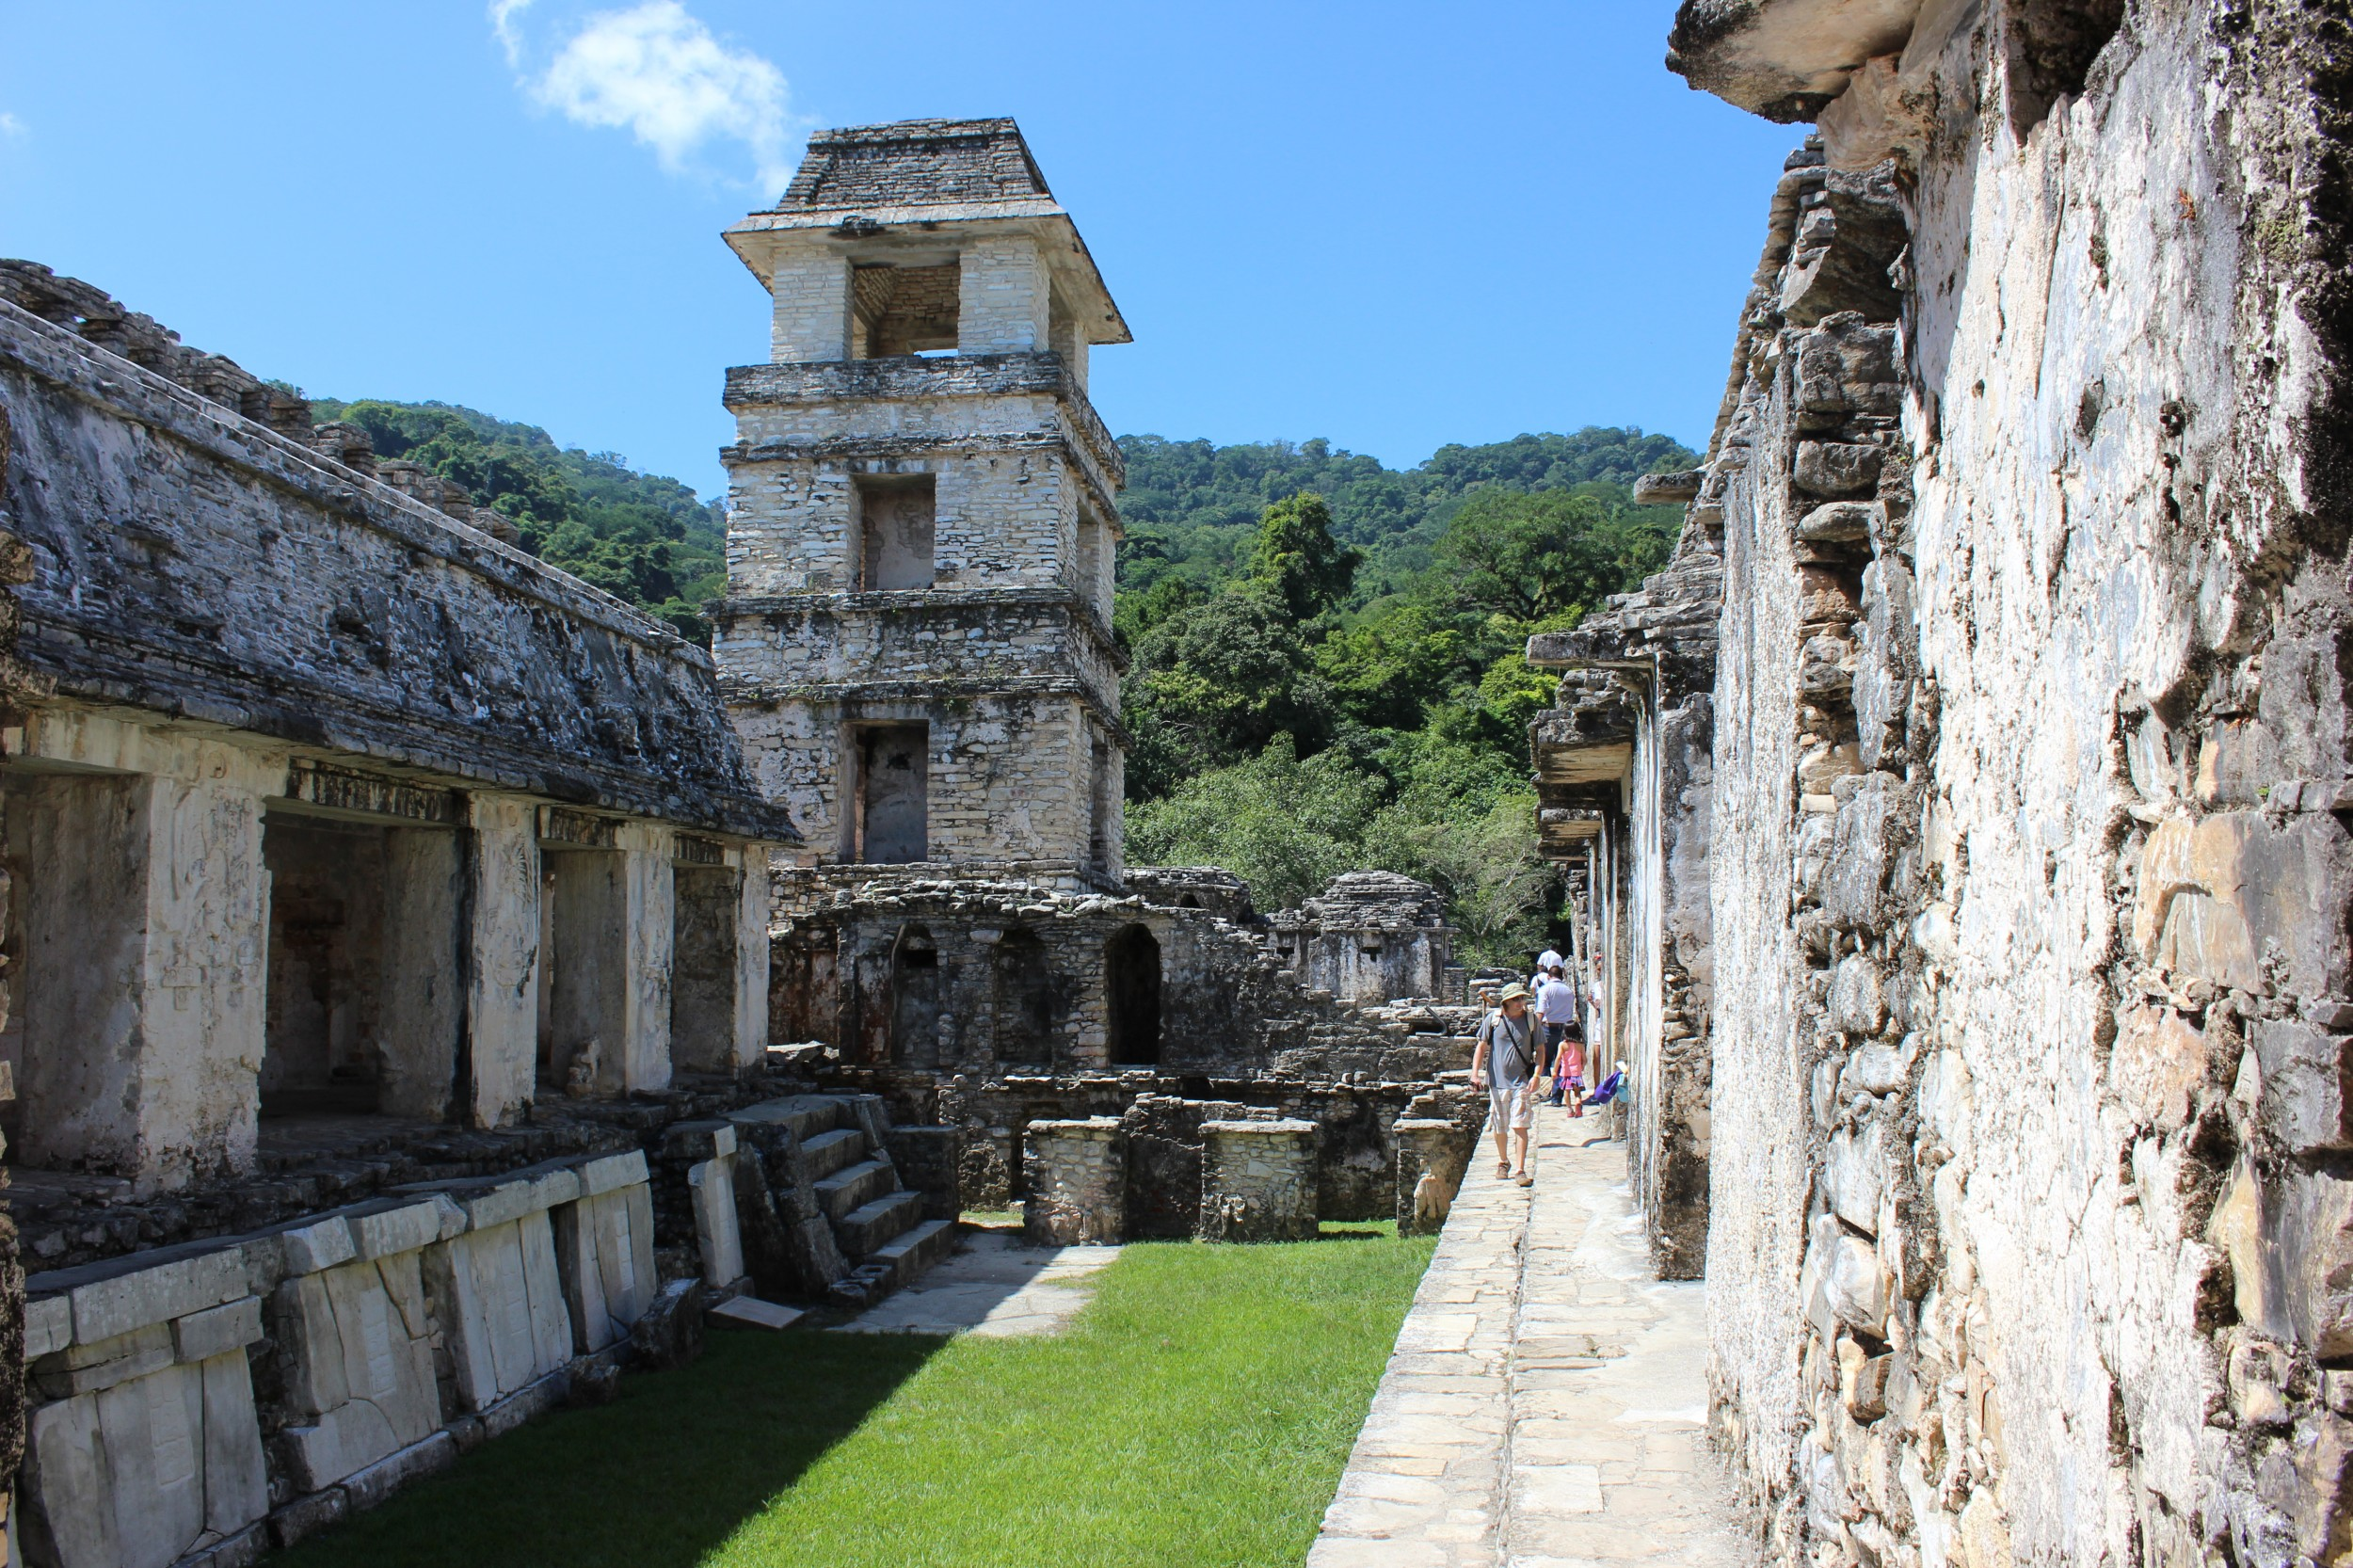 Running around, in and through the ruins of Palenque.